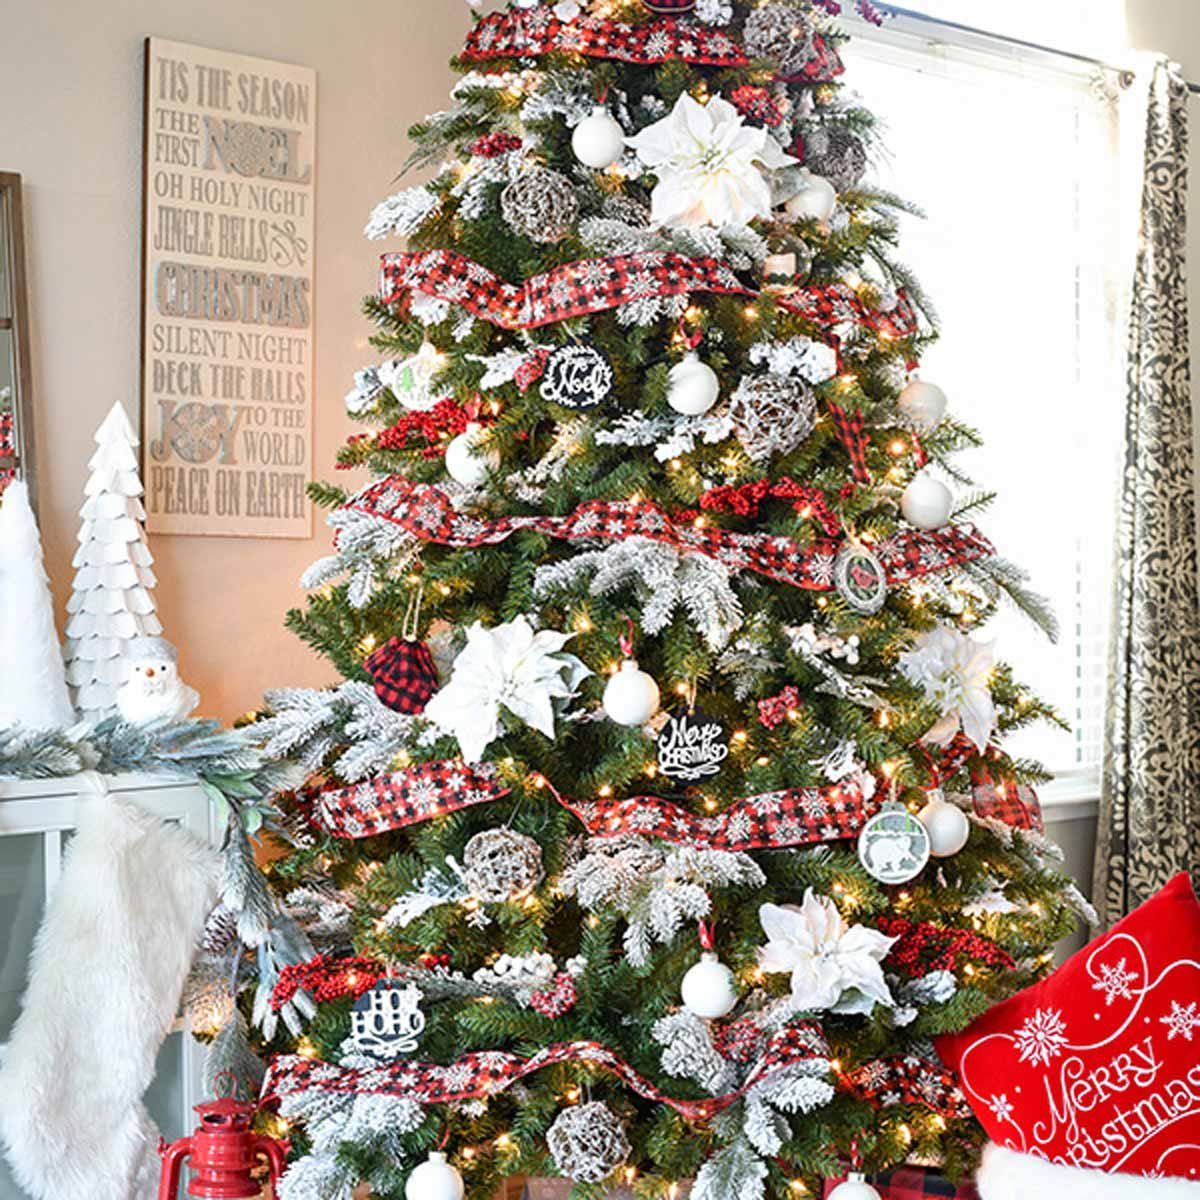 Christmas Tree Design Ideas: Plaid Ribbon